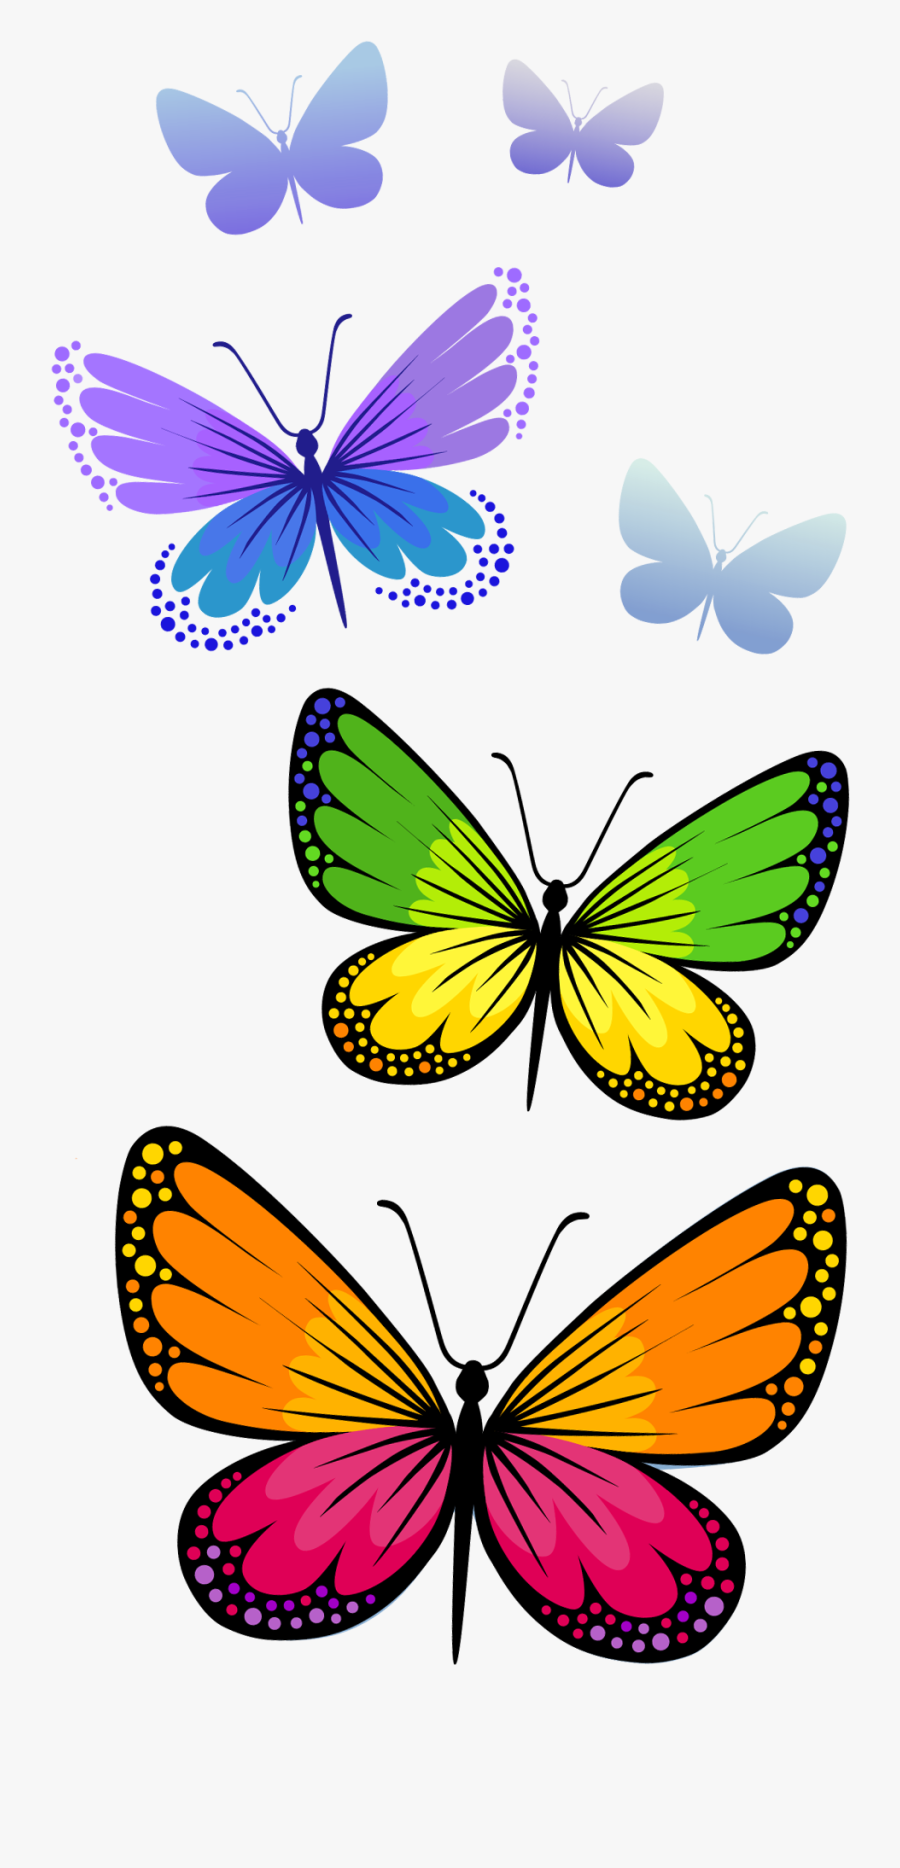 Mq Rainbow Butterfly Butterflys - Png Transparent Butterfly Clipart, Transparent Clipart